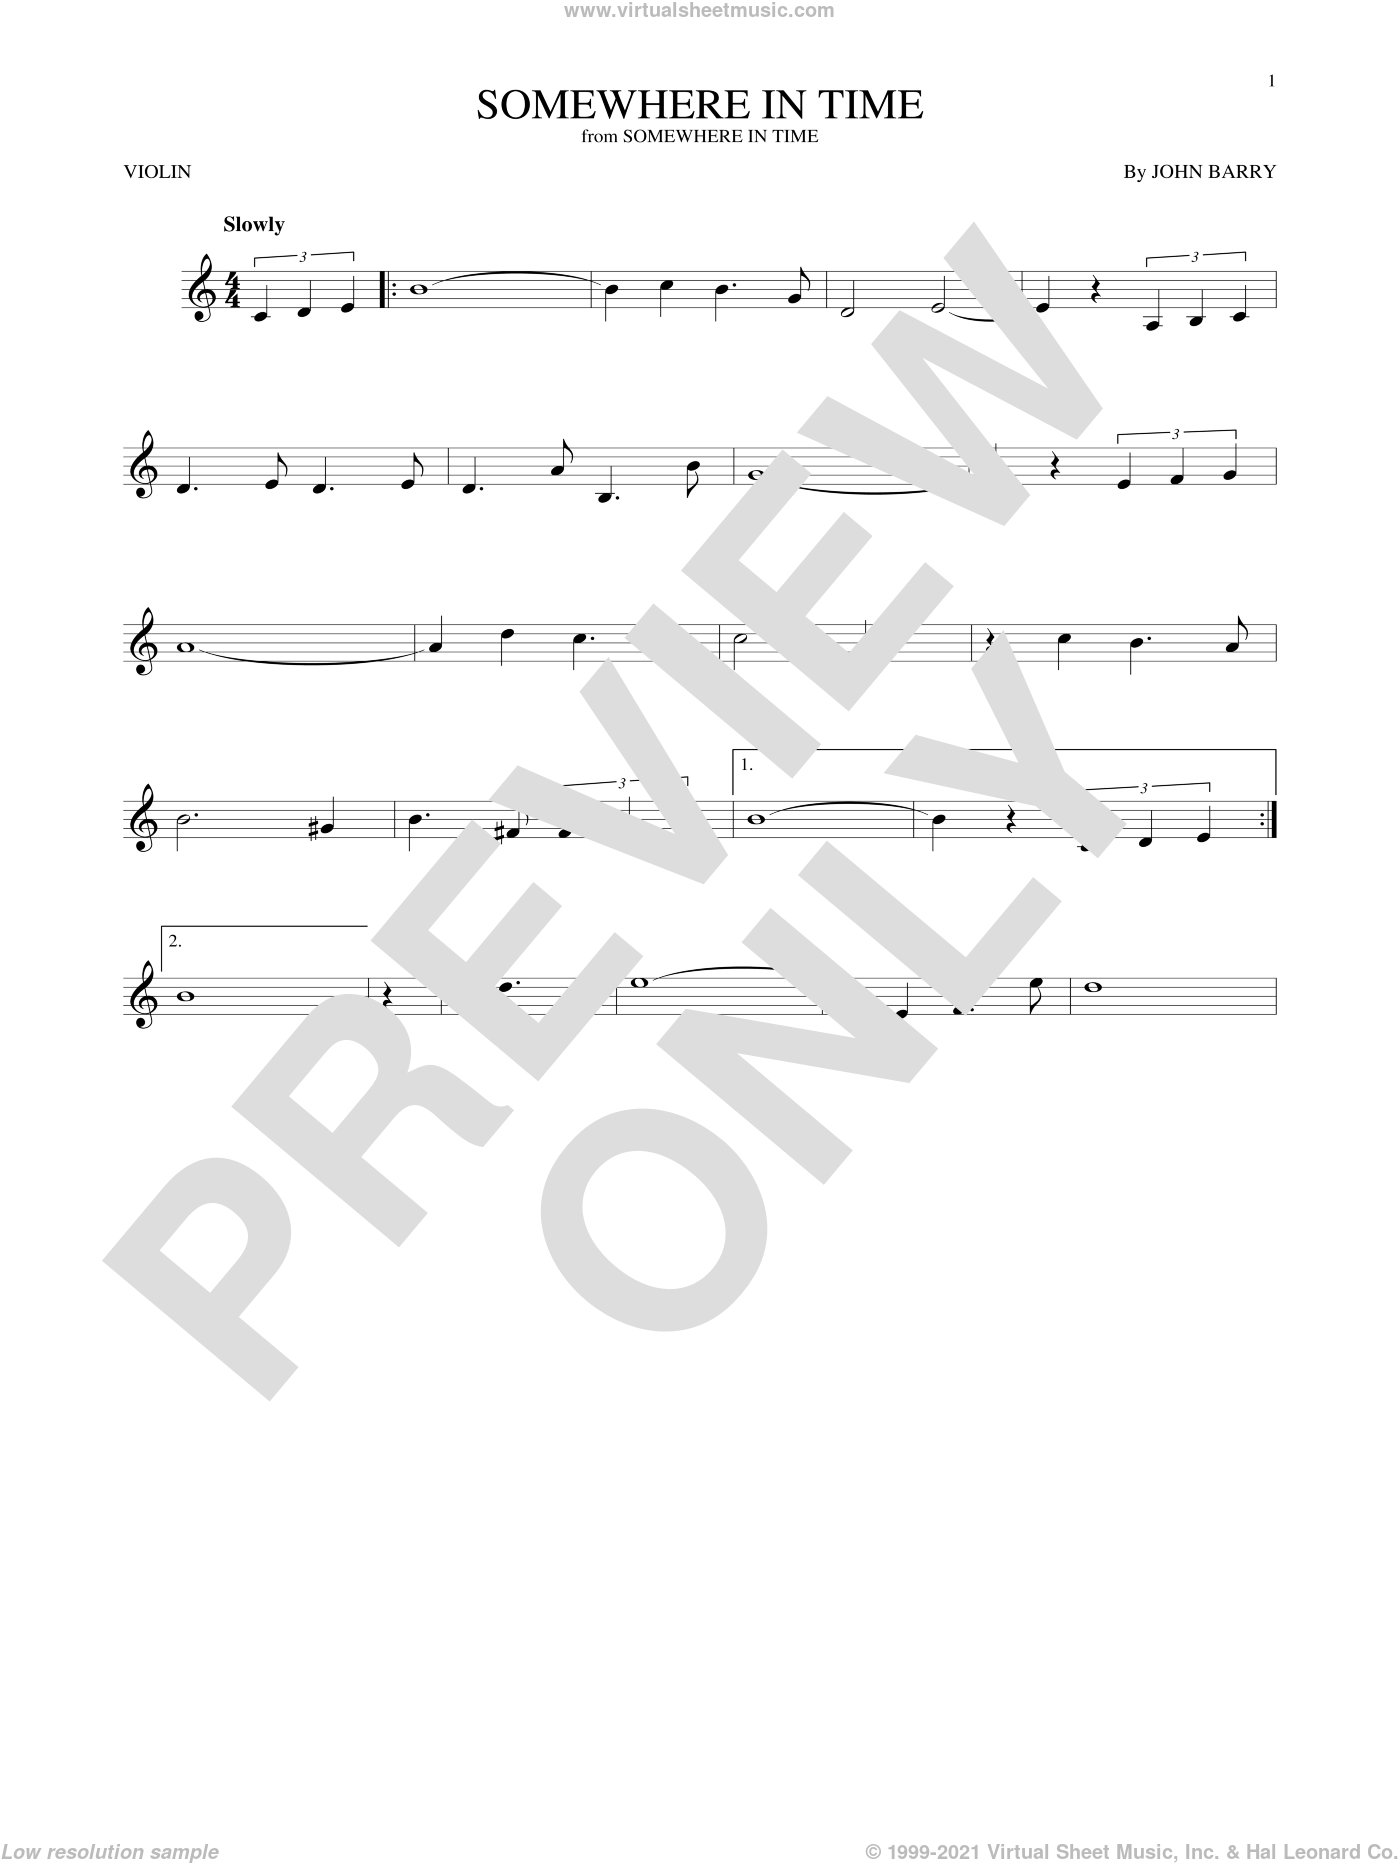 Somewhere In Time sheet music for violin solo by John Barry and B.A. Robertson, intermediate